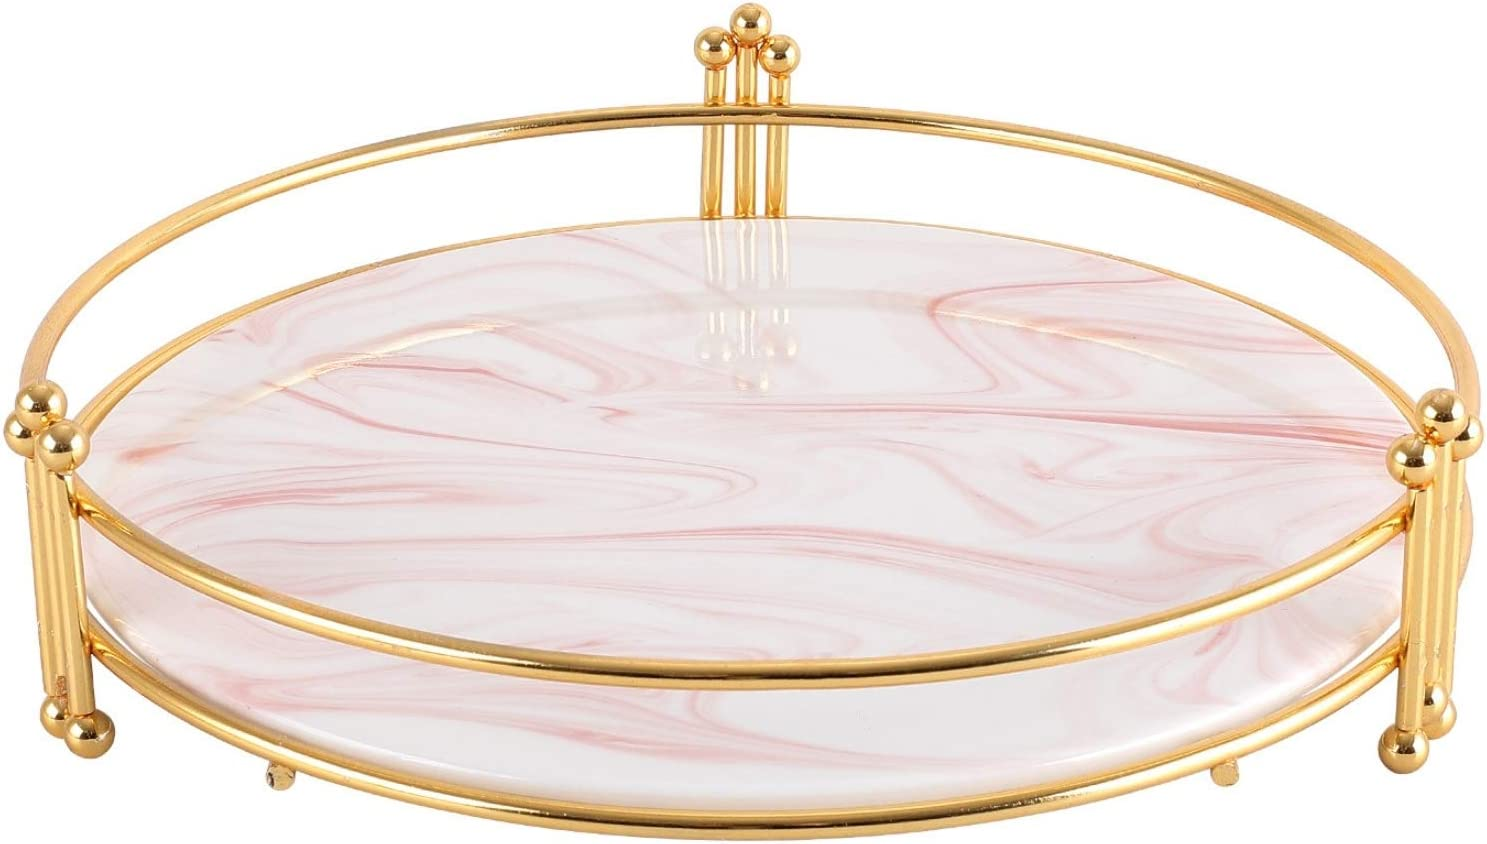 Round Marble Ceramic Decorative Tray with Gold Stand, 10.2'' Vanity Tray, Perfume Tray or Makeup Tray for Dresser, Coffee Table Decor Tray, Candle Holder Tray